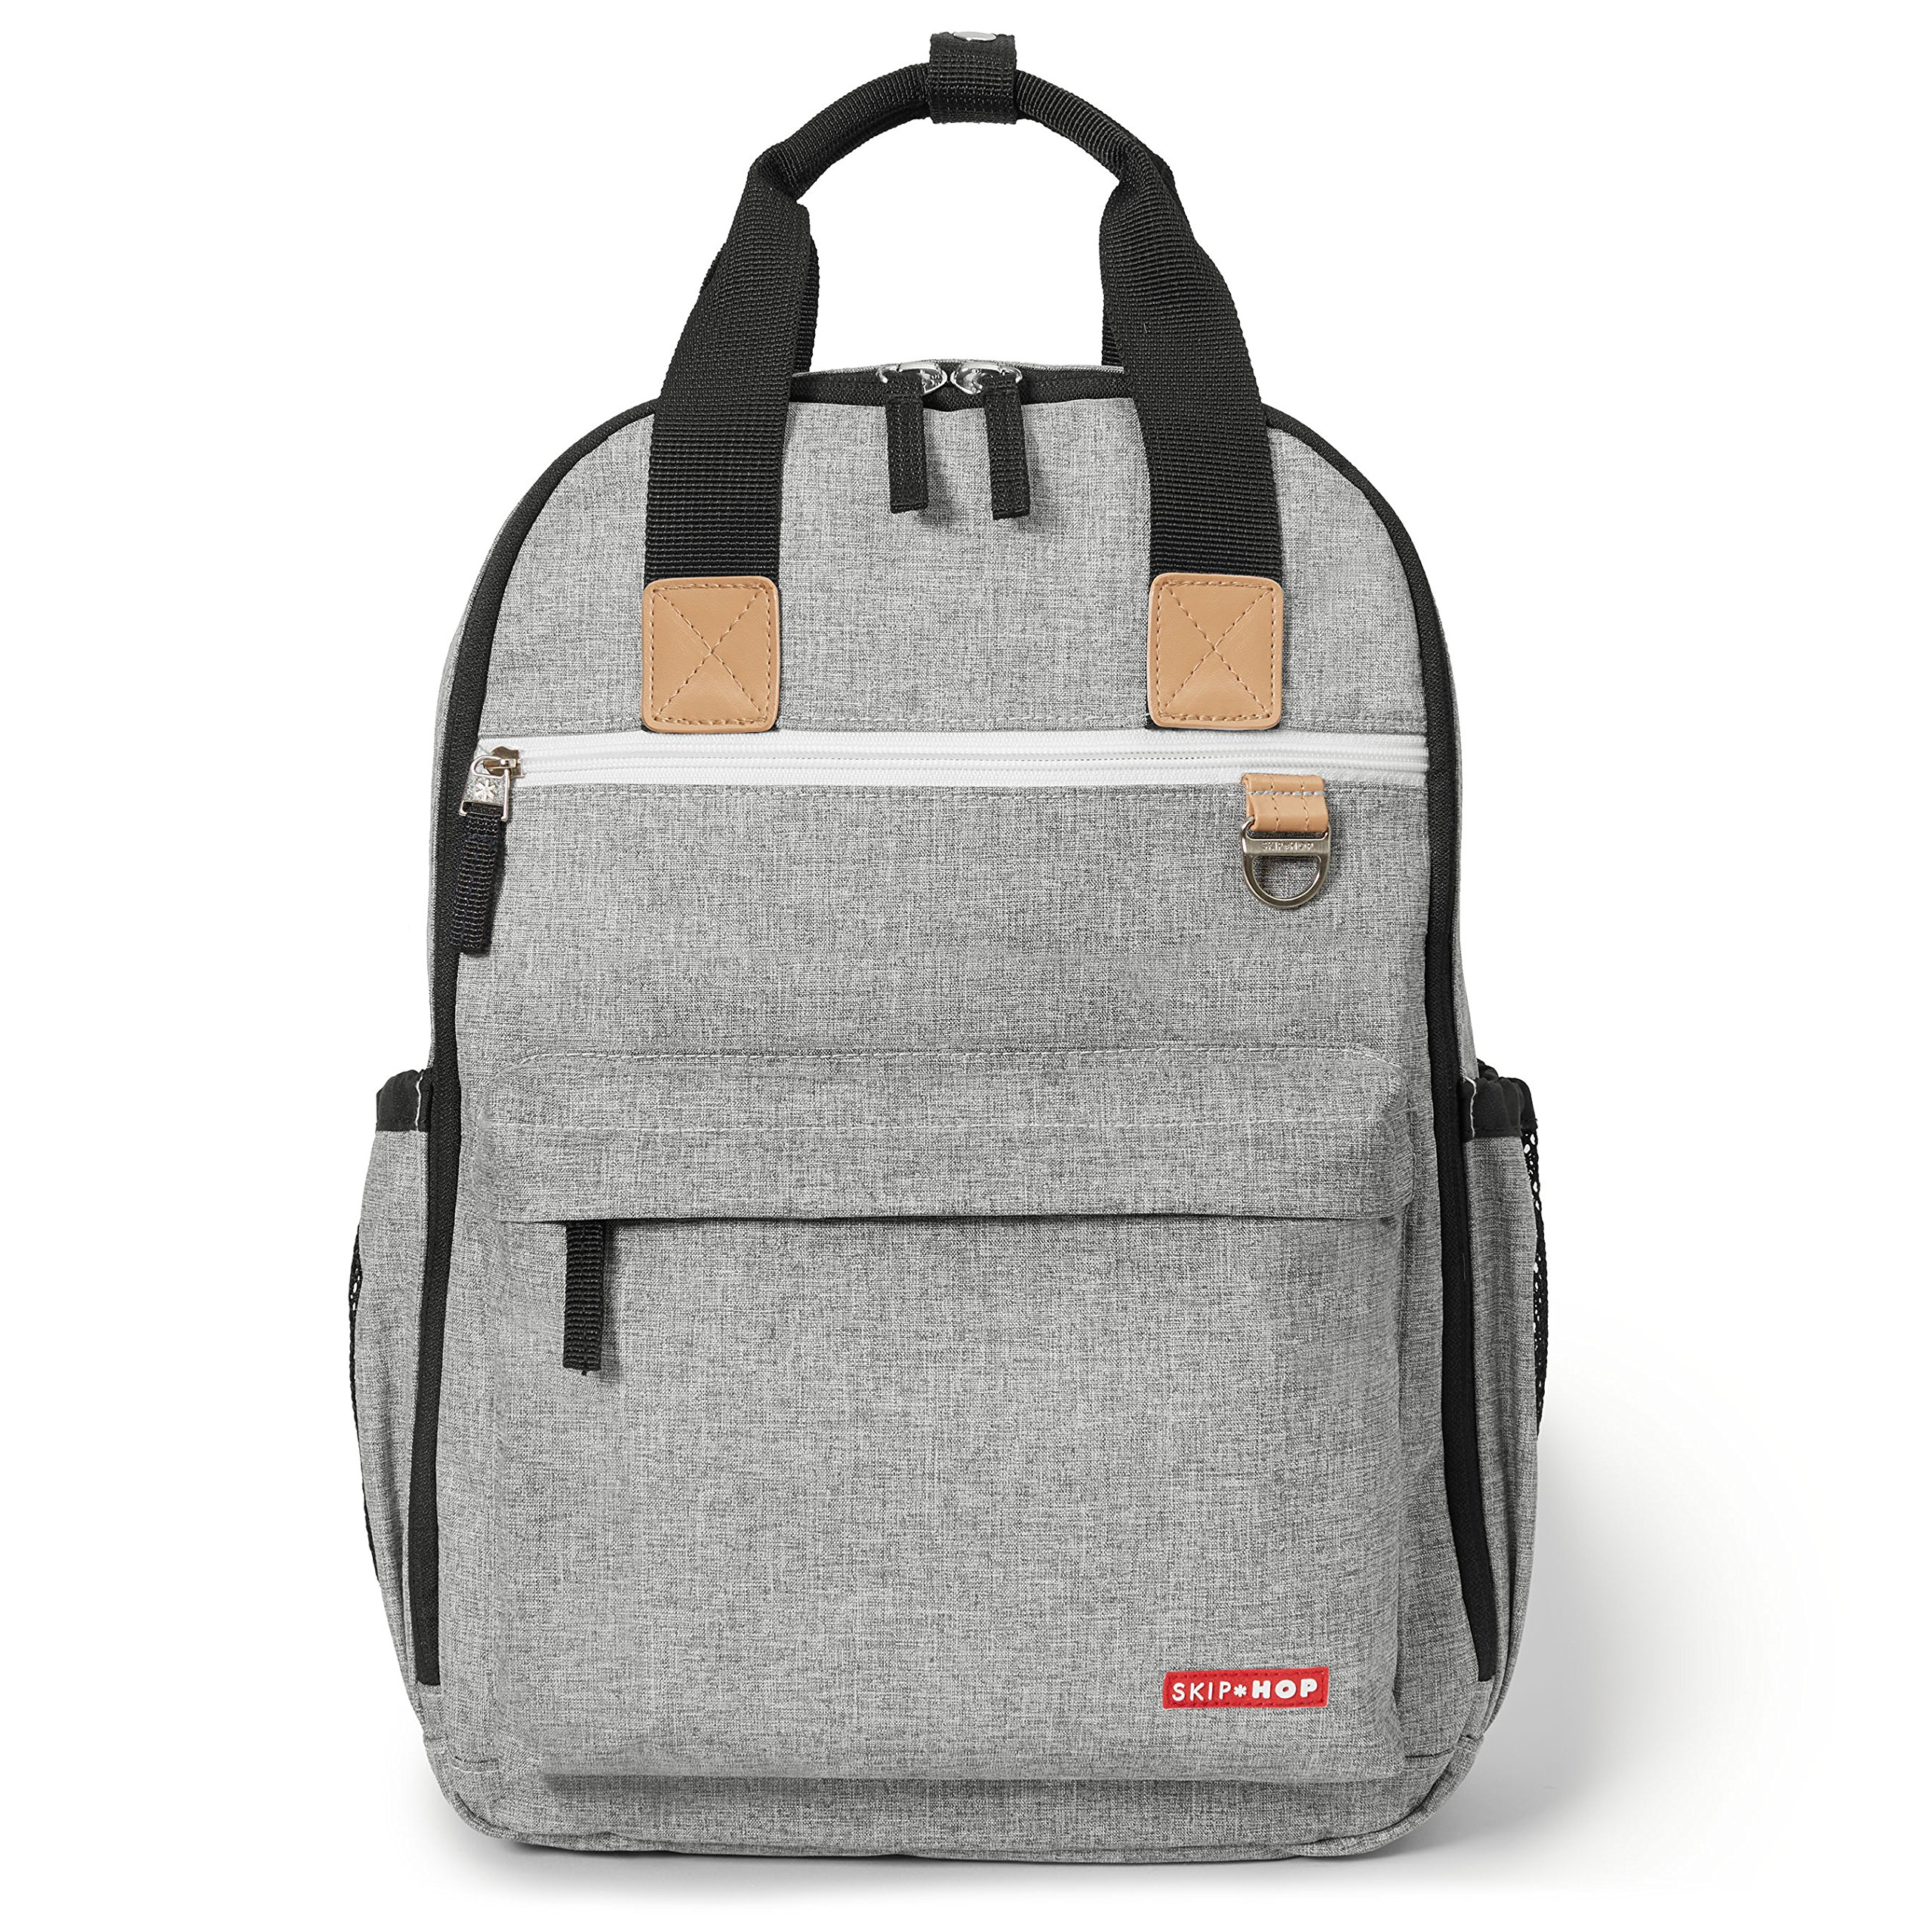 Skip Hop Diaper Bag Backpack with Matching Changing Pad, Duo Signature, Grey Melange by Skip Hop